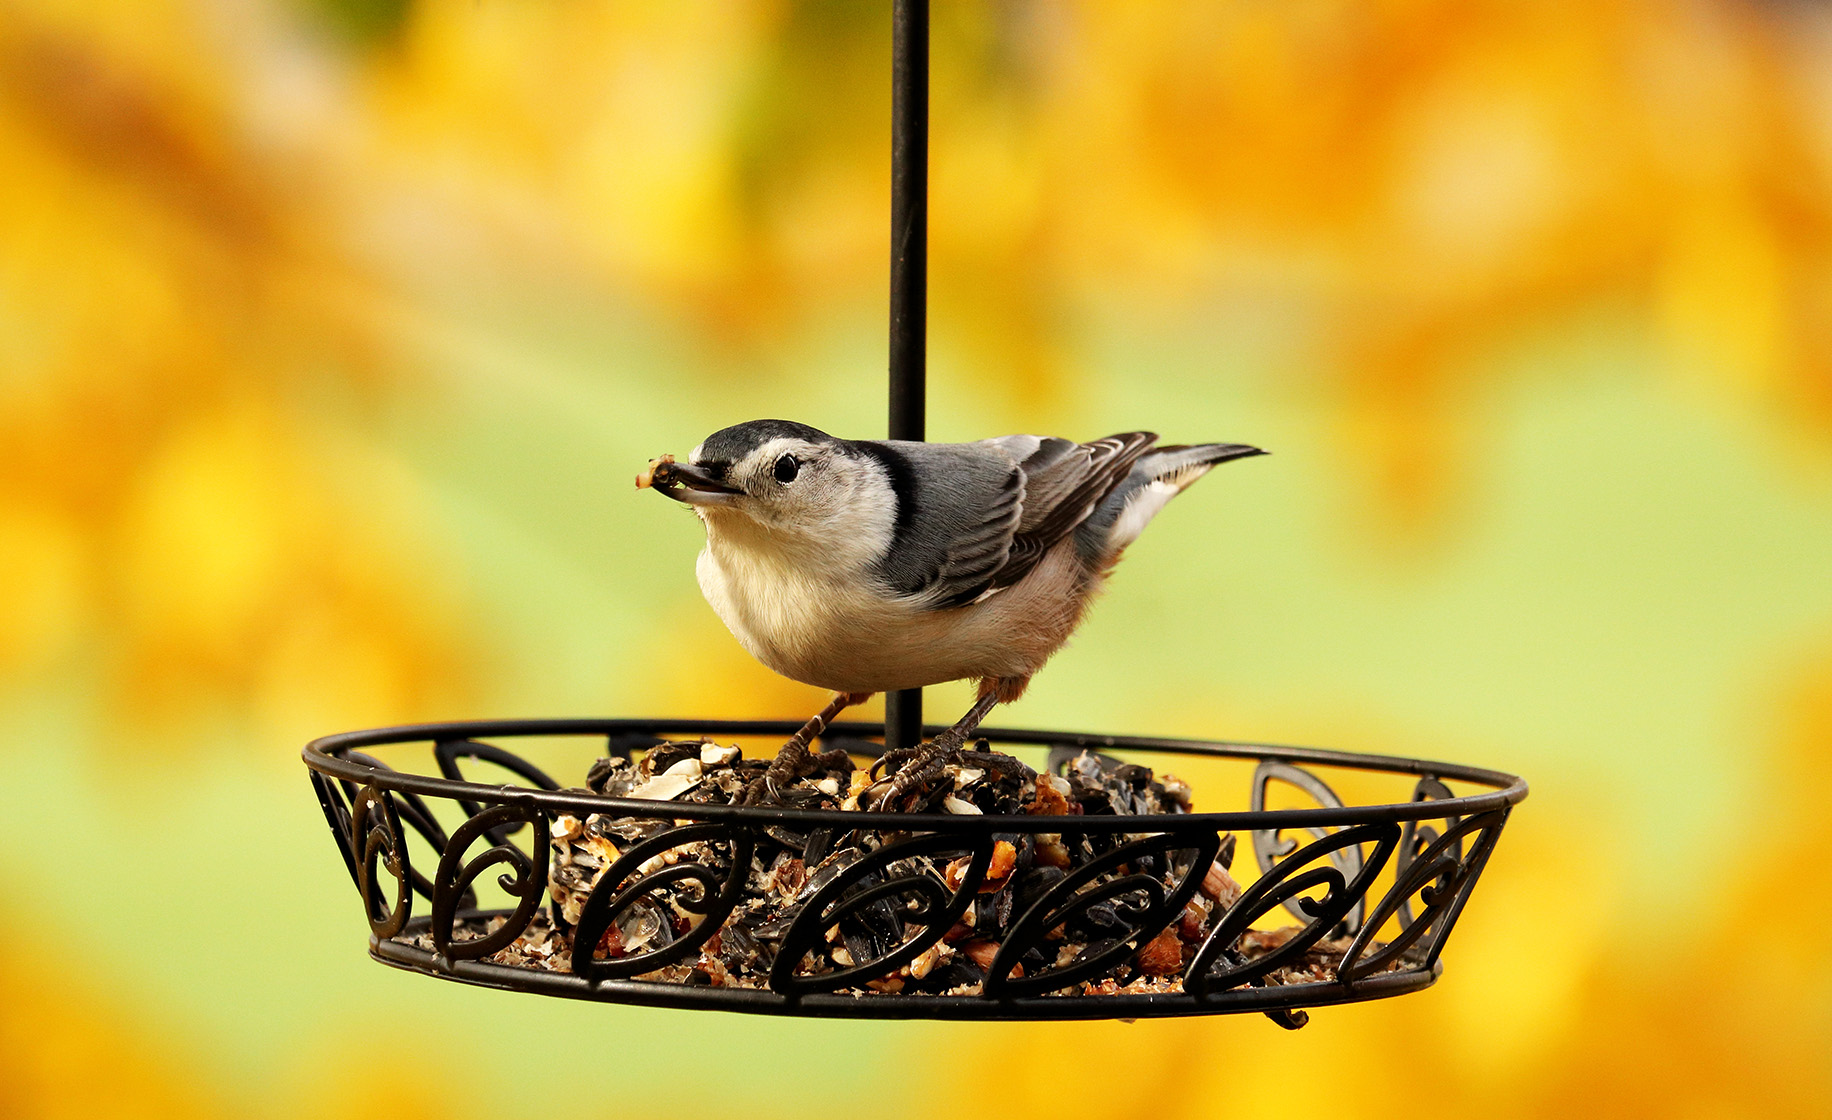 White-breasted nuthatch photo by Shutterstock